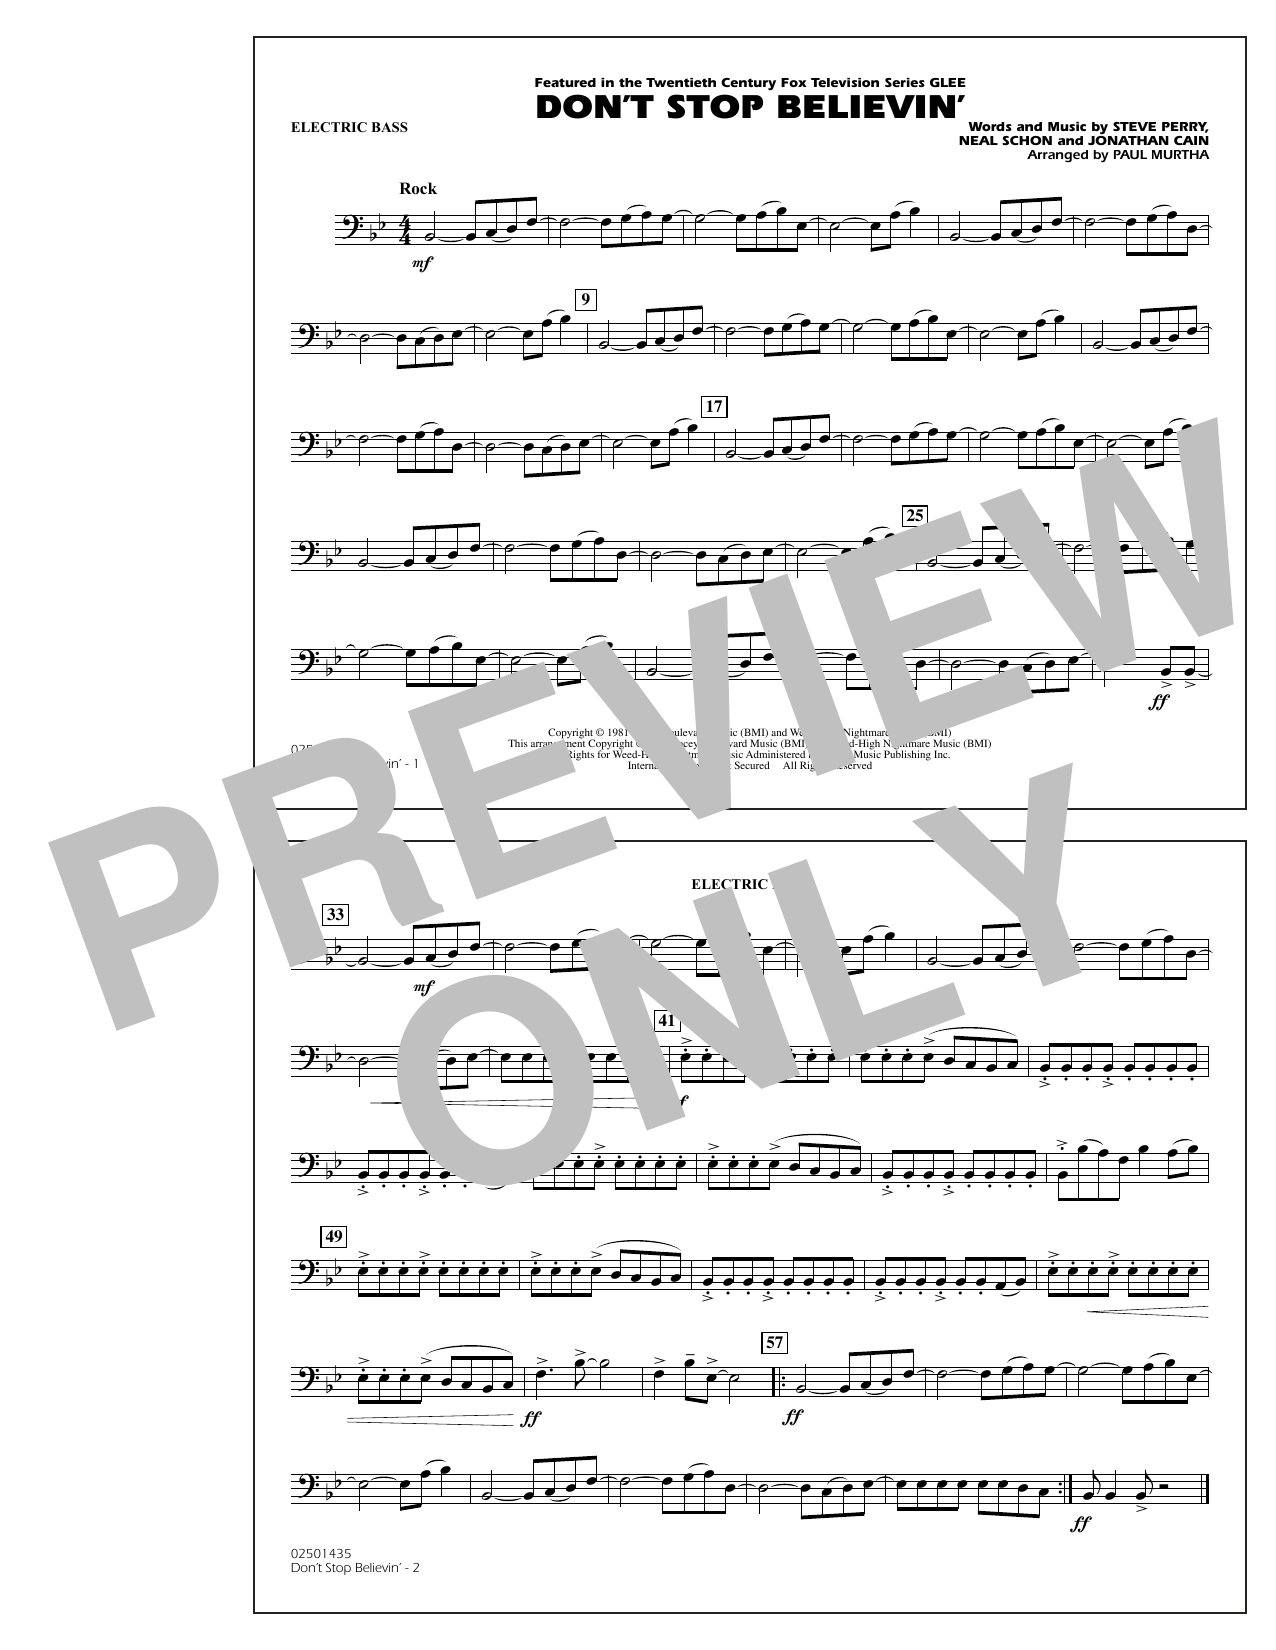 Paul Murtha Don't Stop Believin' - Electric Bass sheet music notes and chords. Download Printable PDF.